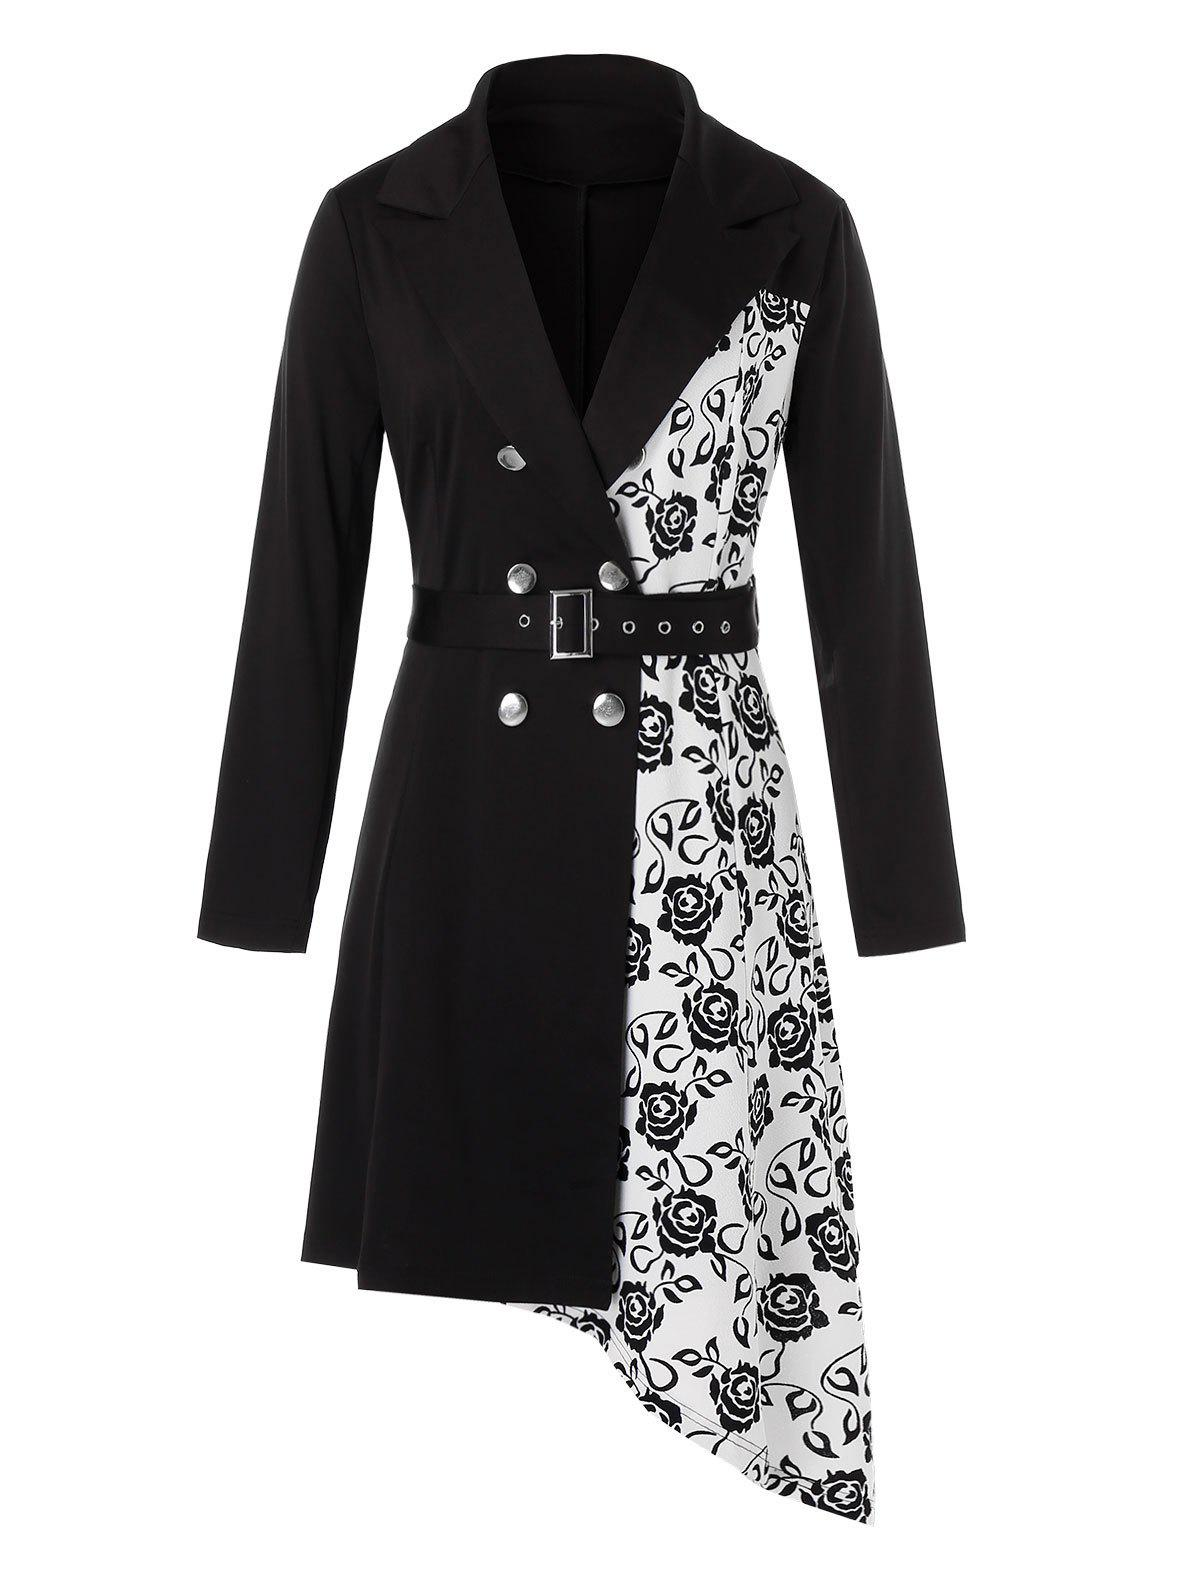 Plus Size Asymmetrical Flower Imprimer Belted Blazer Robe Lapel